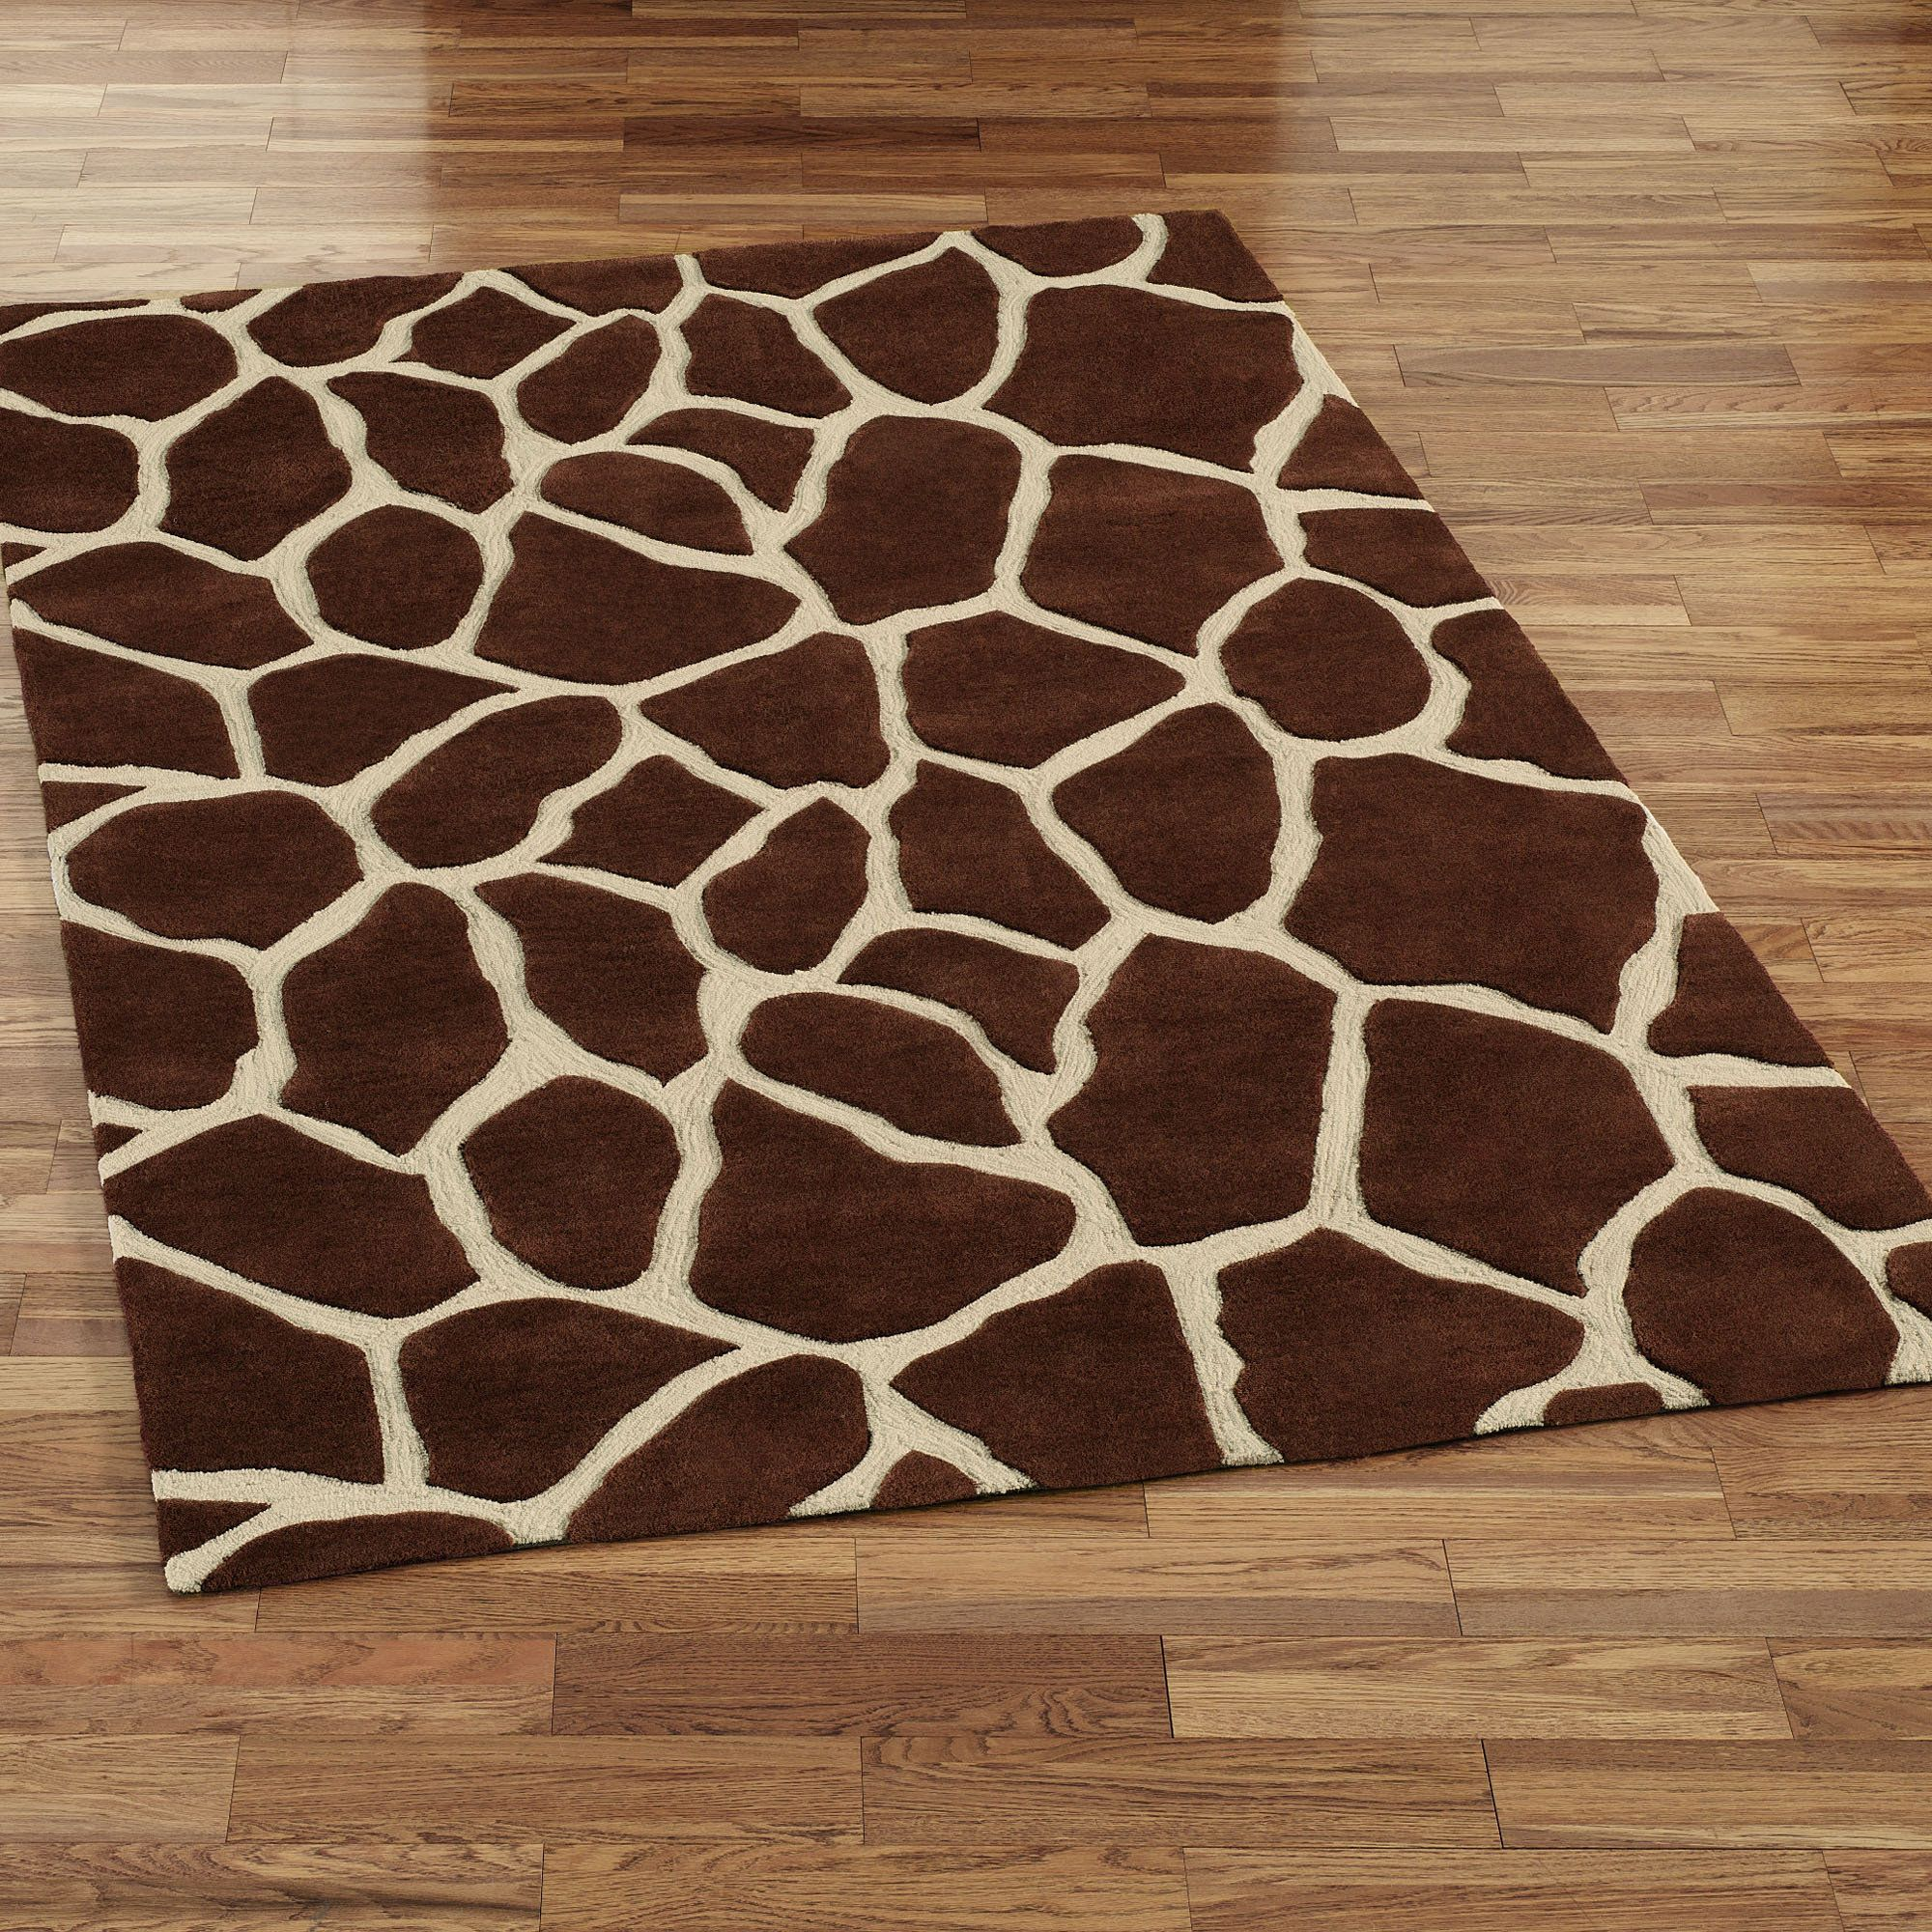 Giraffe Area Rug Love The Textile